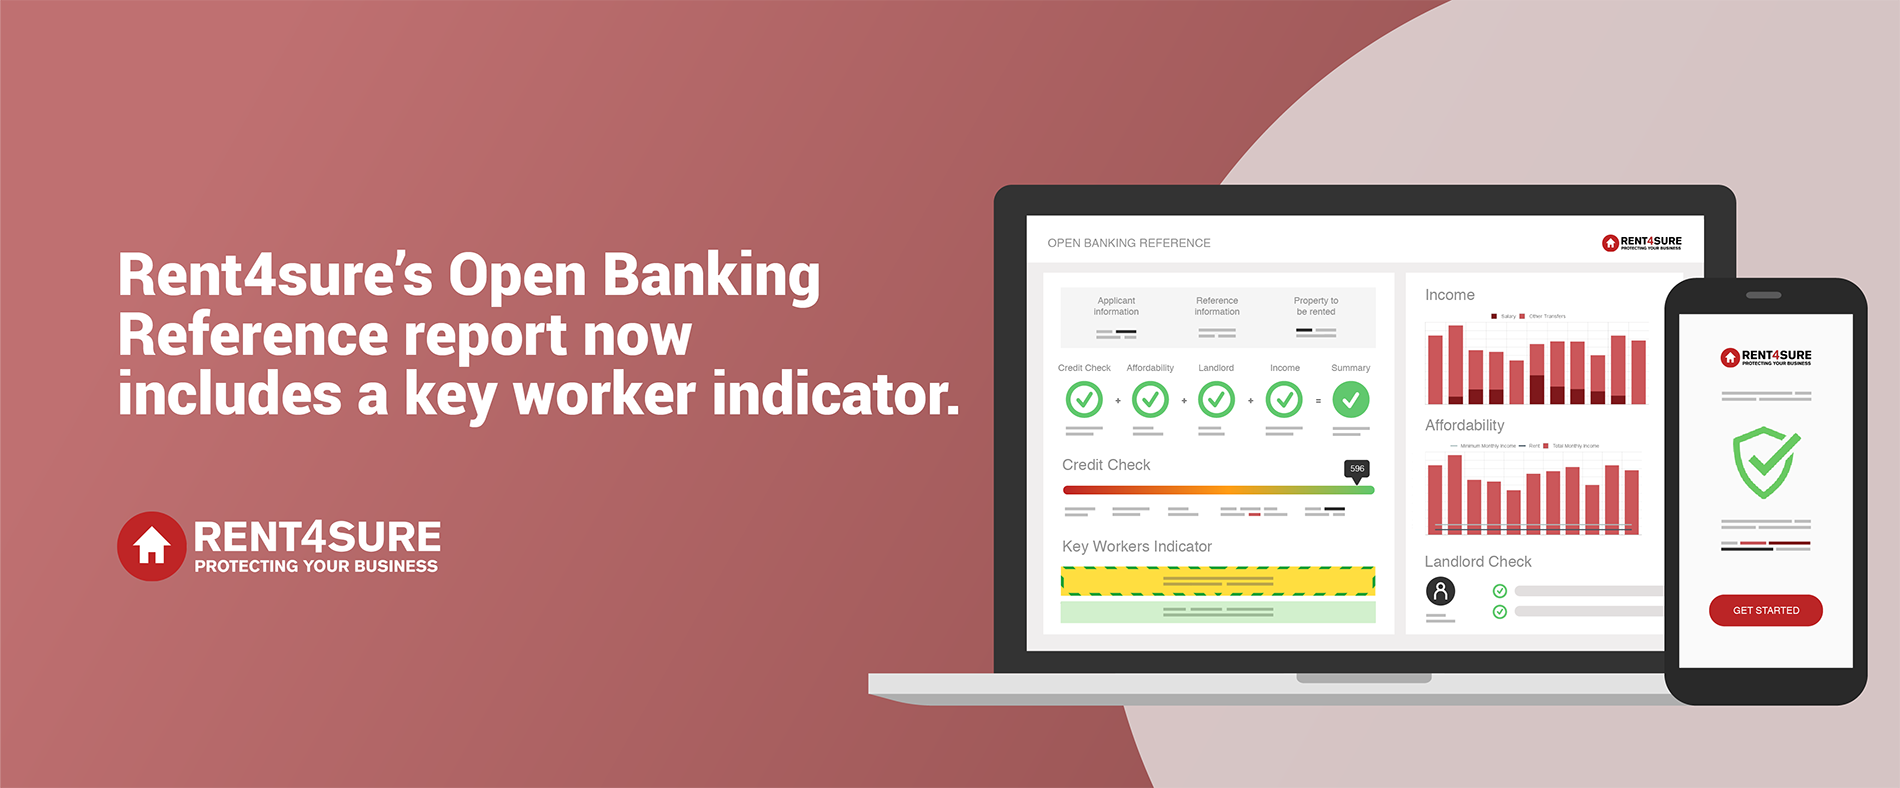 A key worker indicator is now included in Rent4sure's